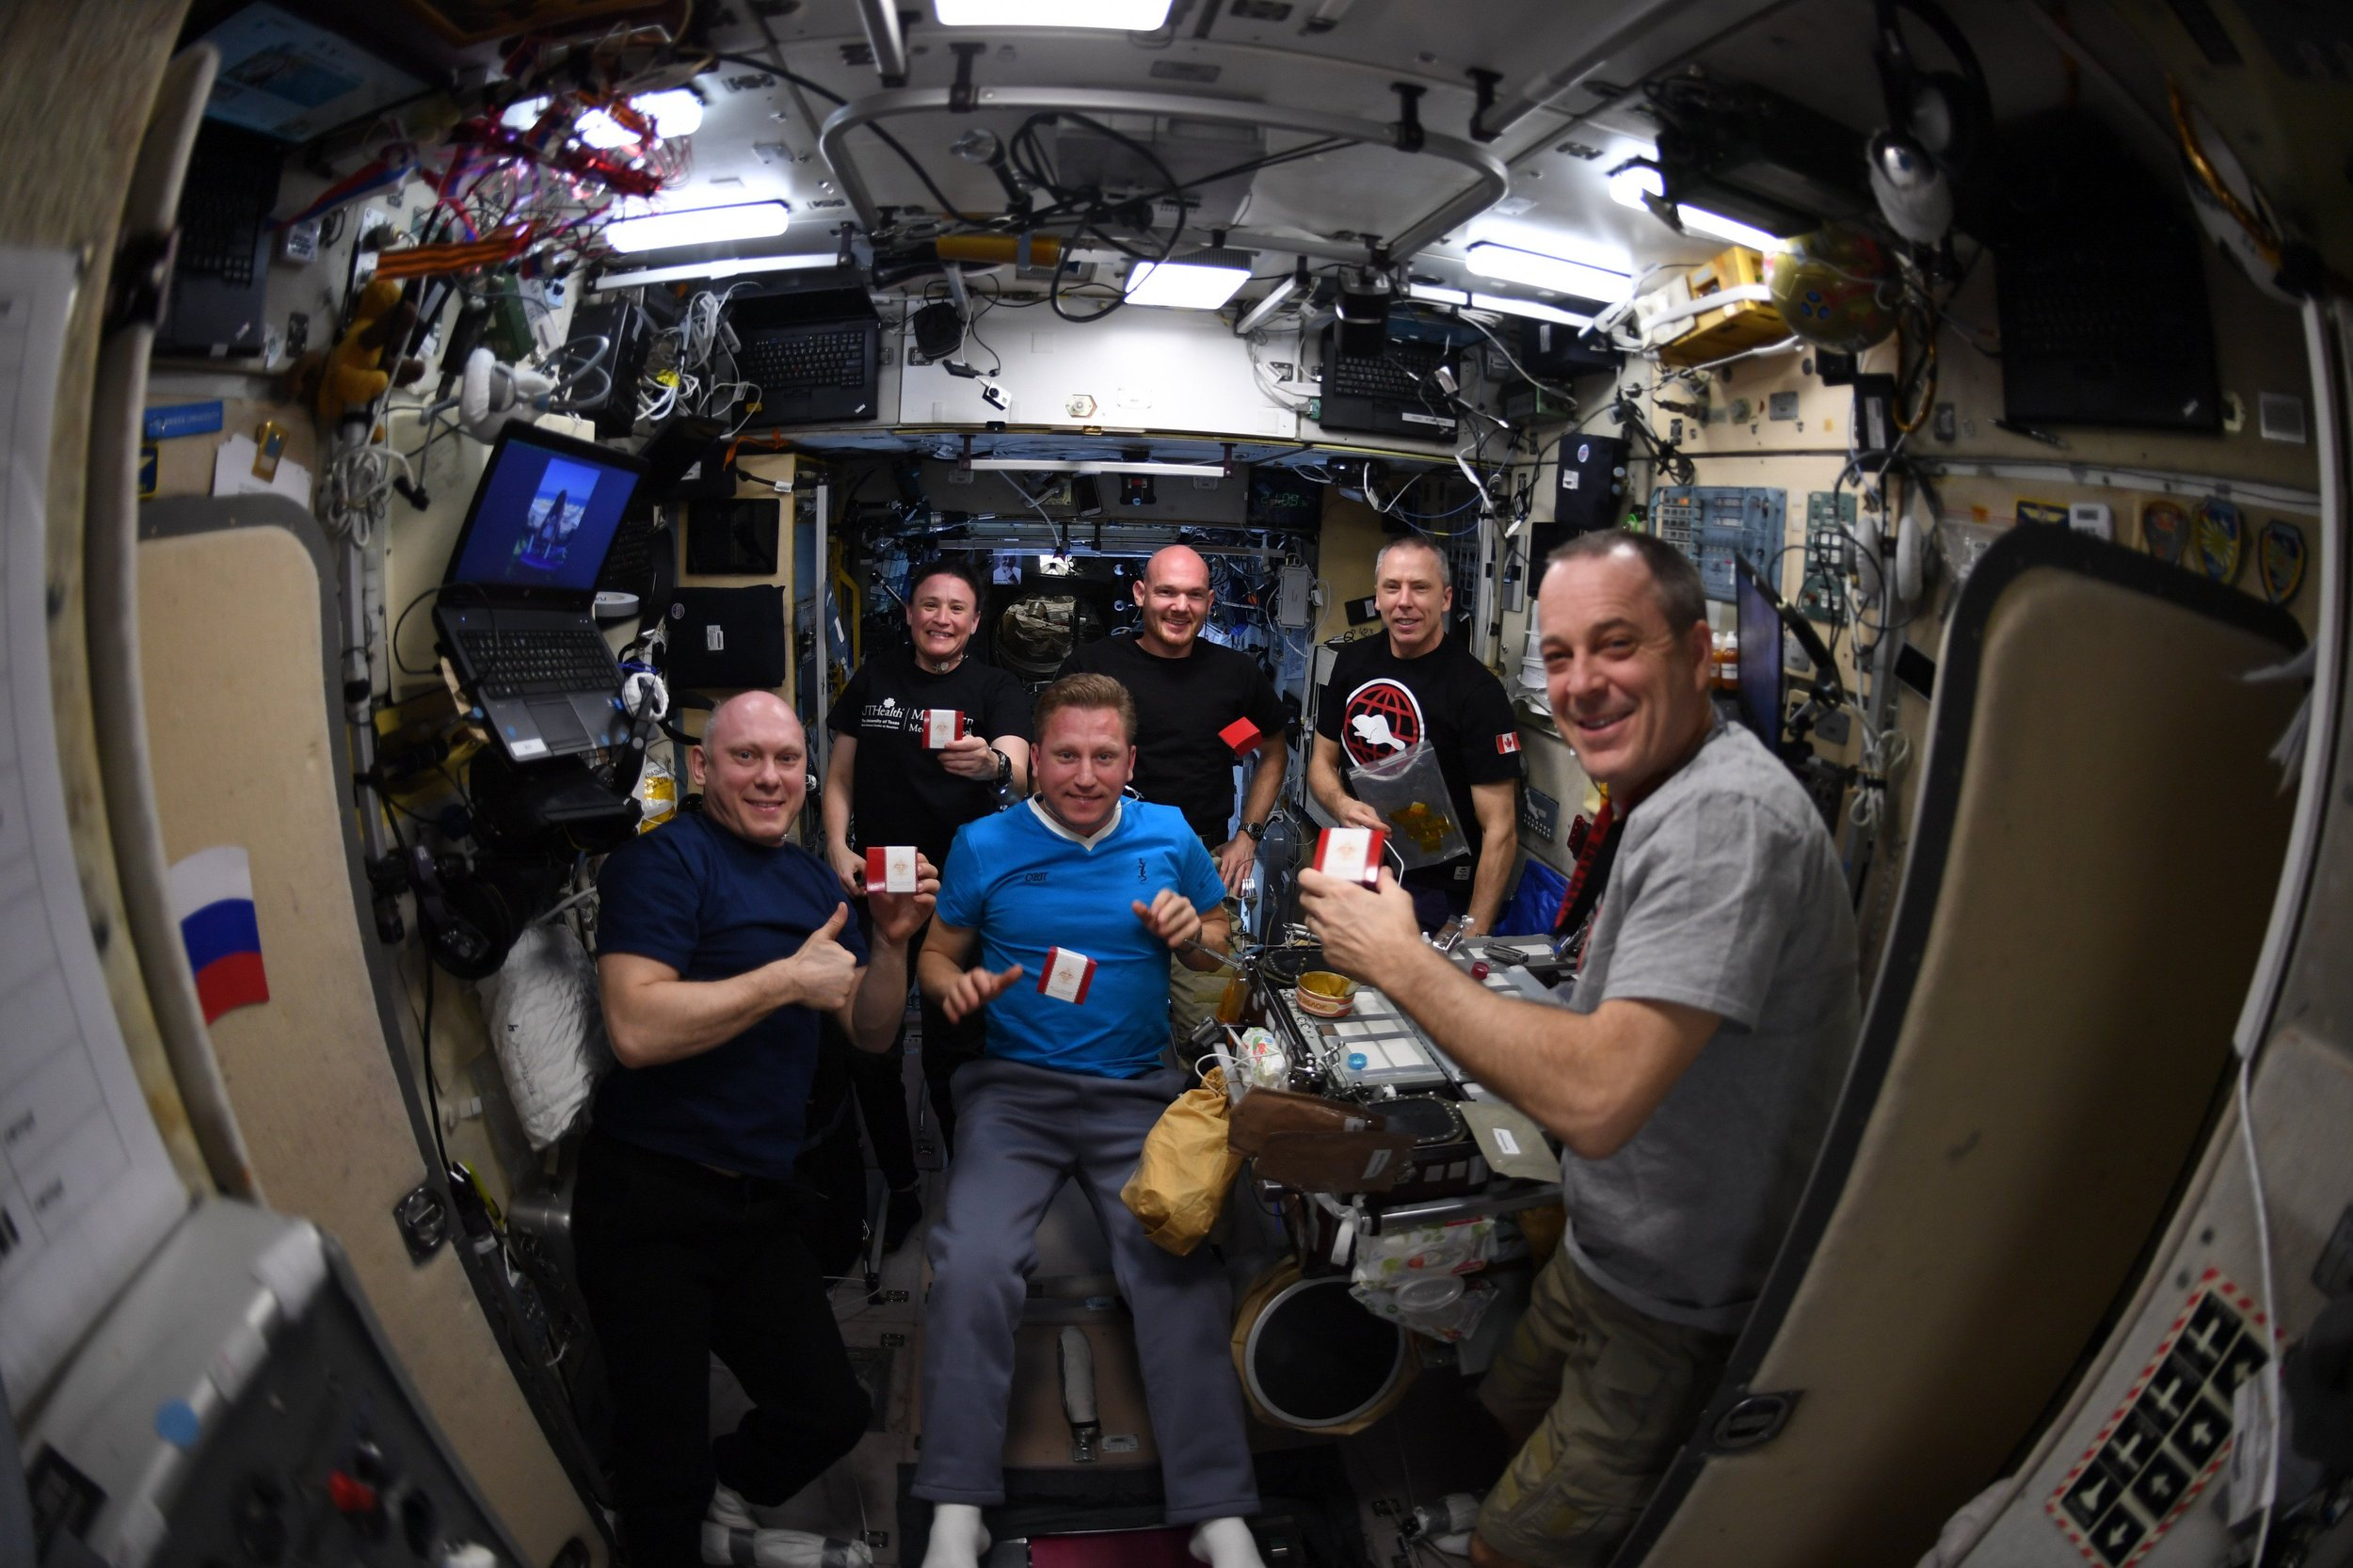 Astronautson the ISS - Each with a Peace by Chocolate™ Box. Image courtesy of CTV News.